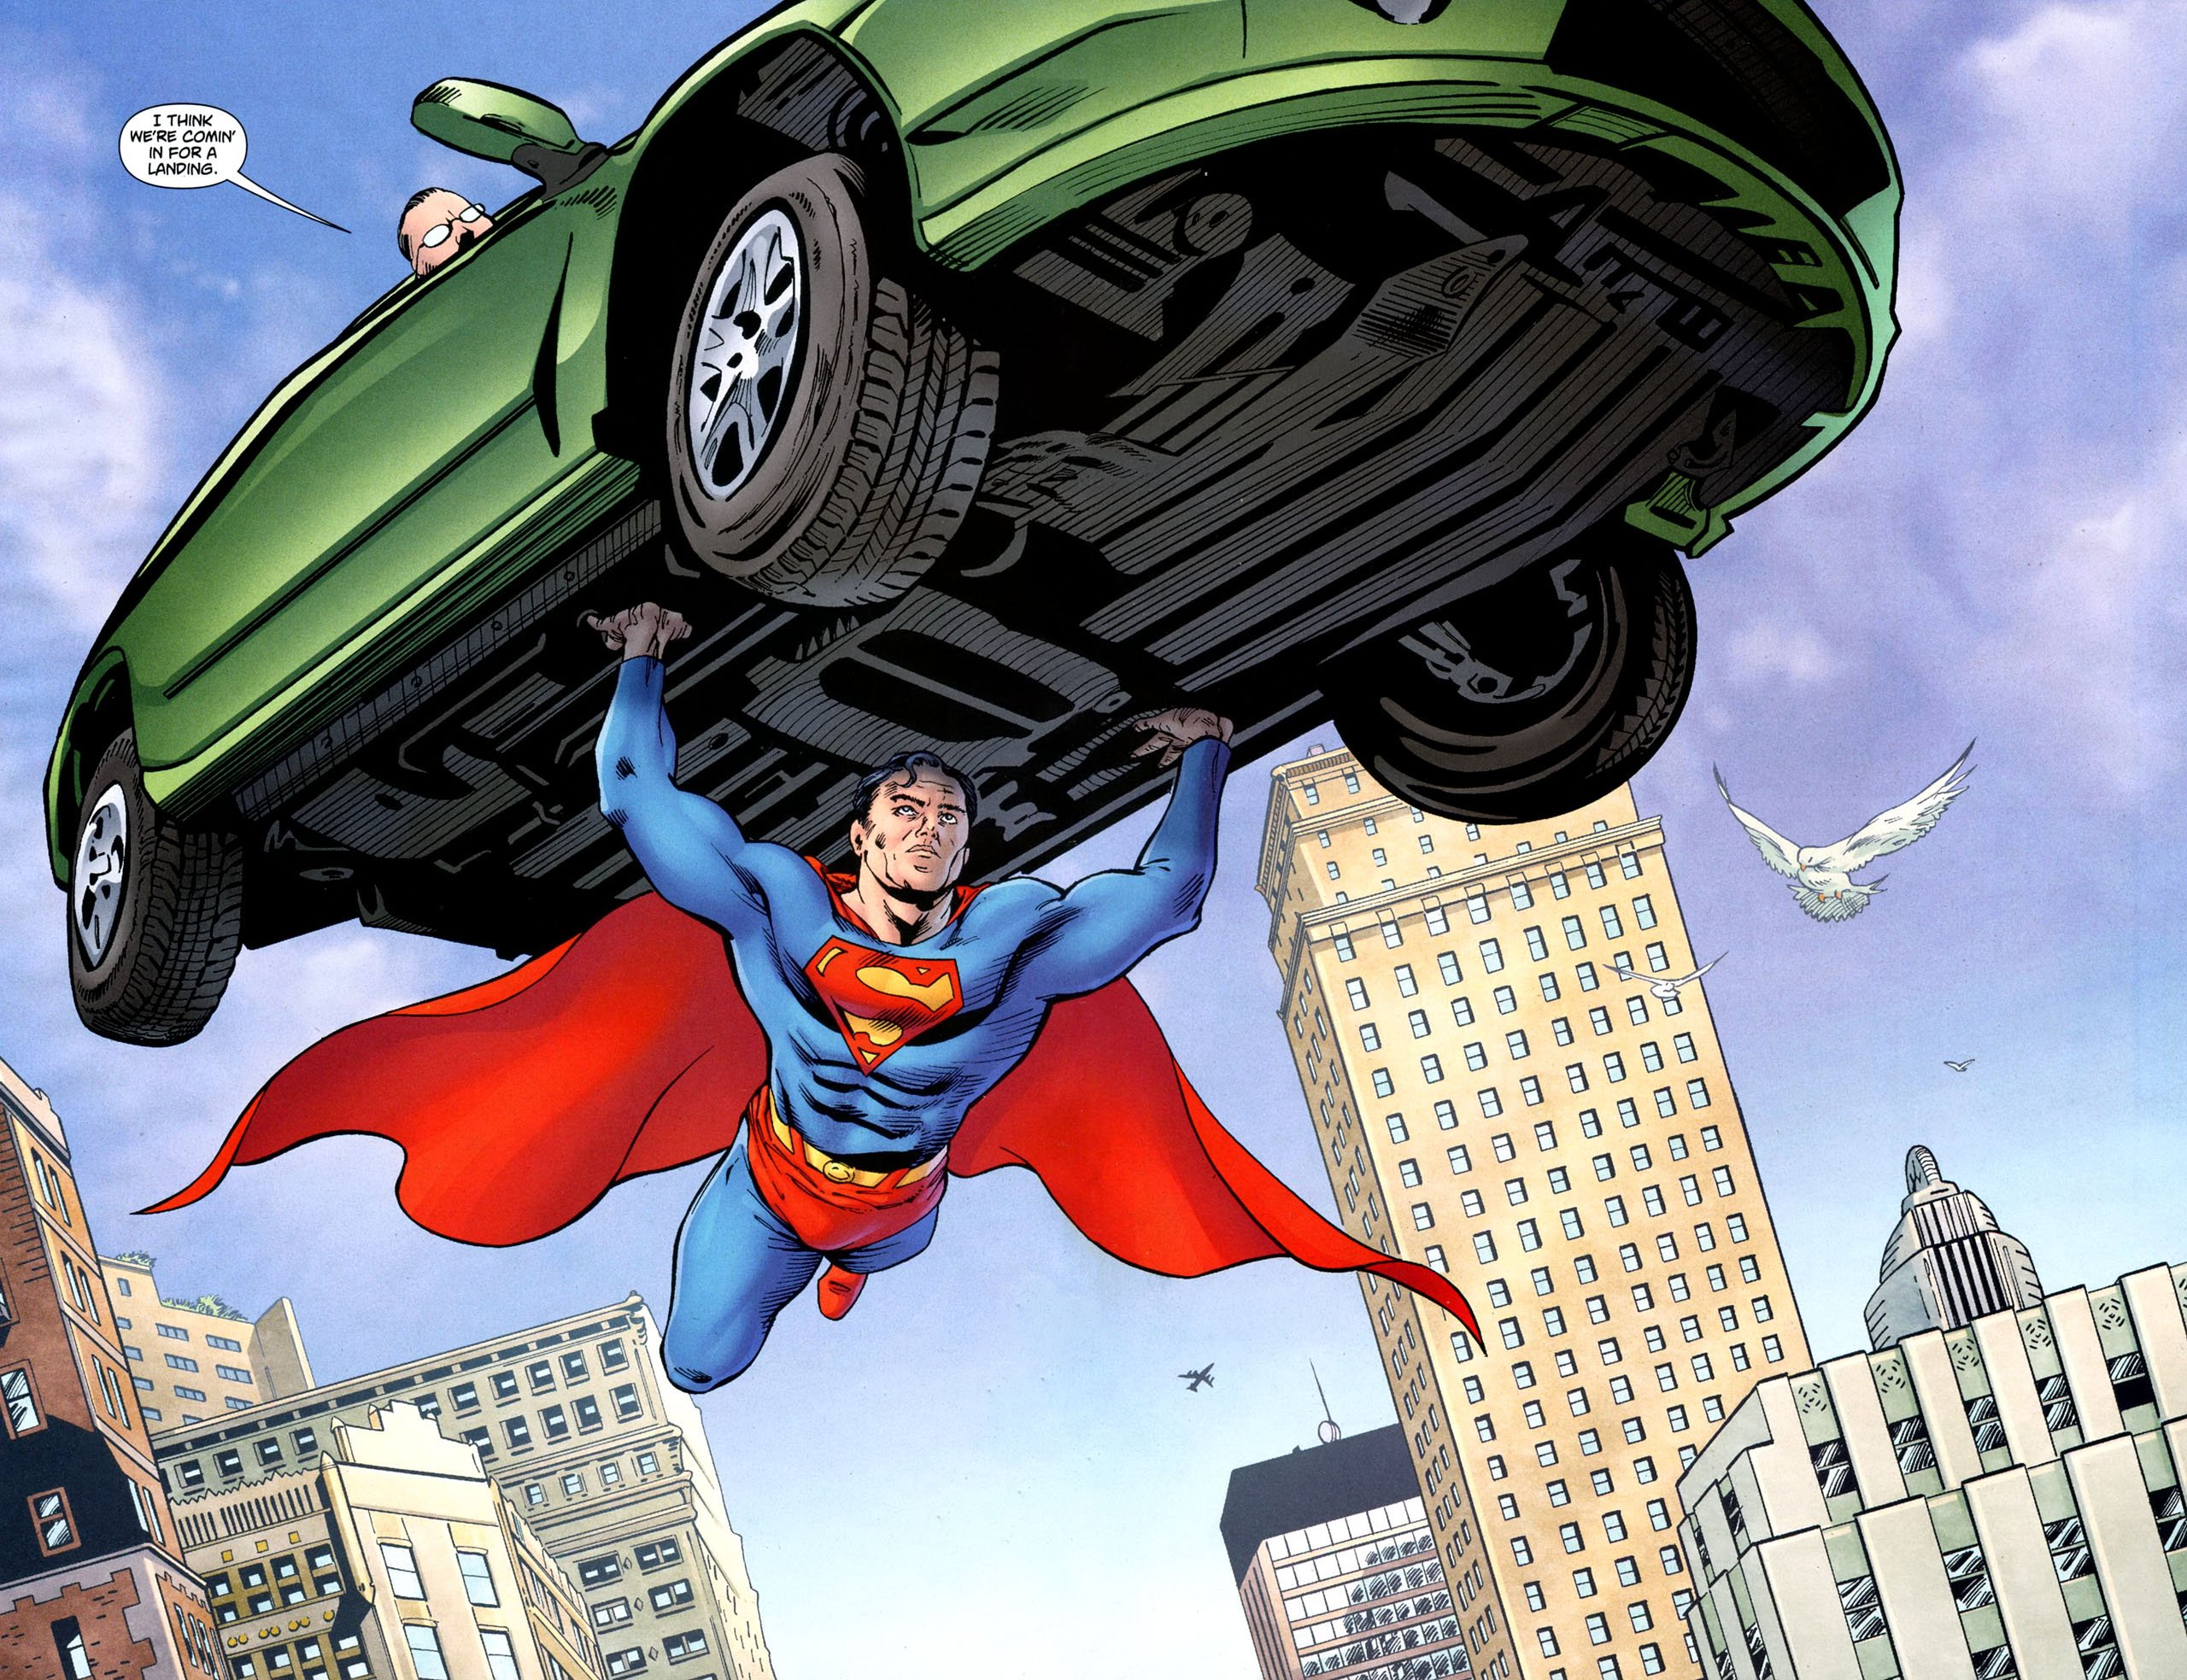 NFI Corp_superman-lifts-a-car_industrial strength_blog